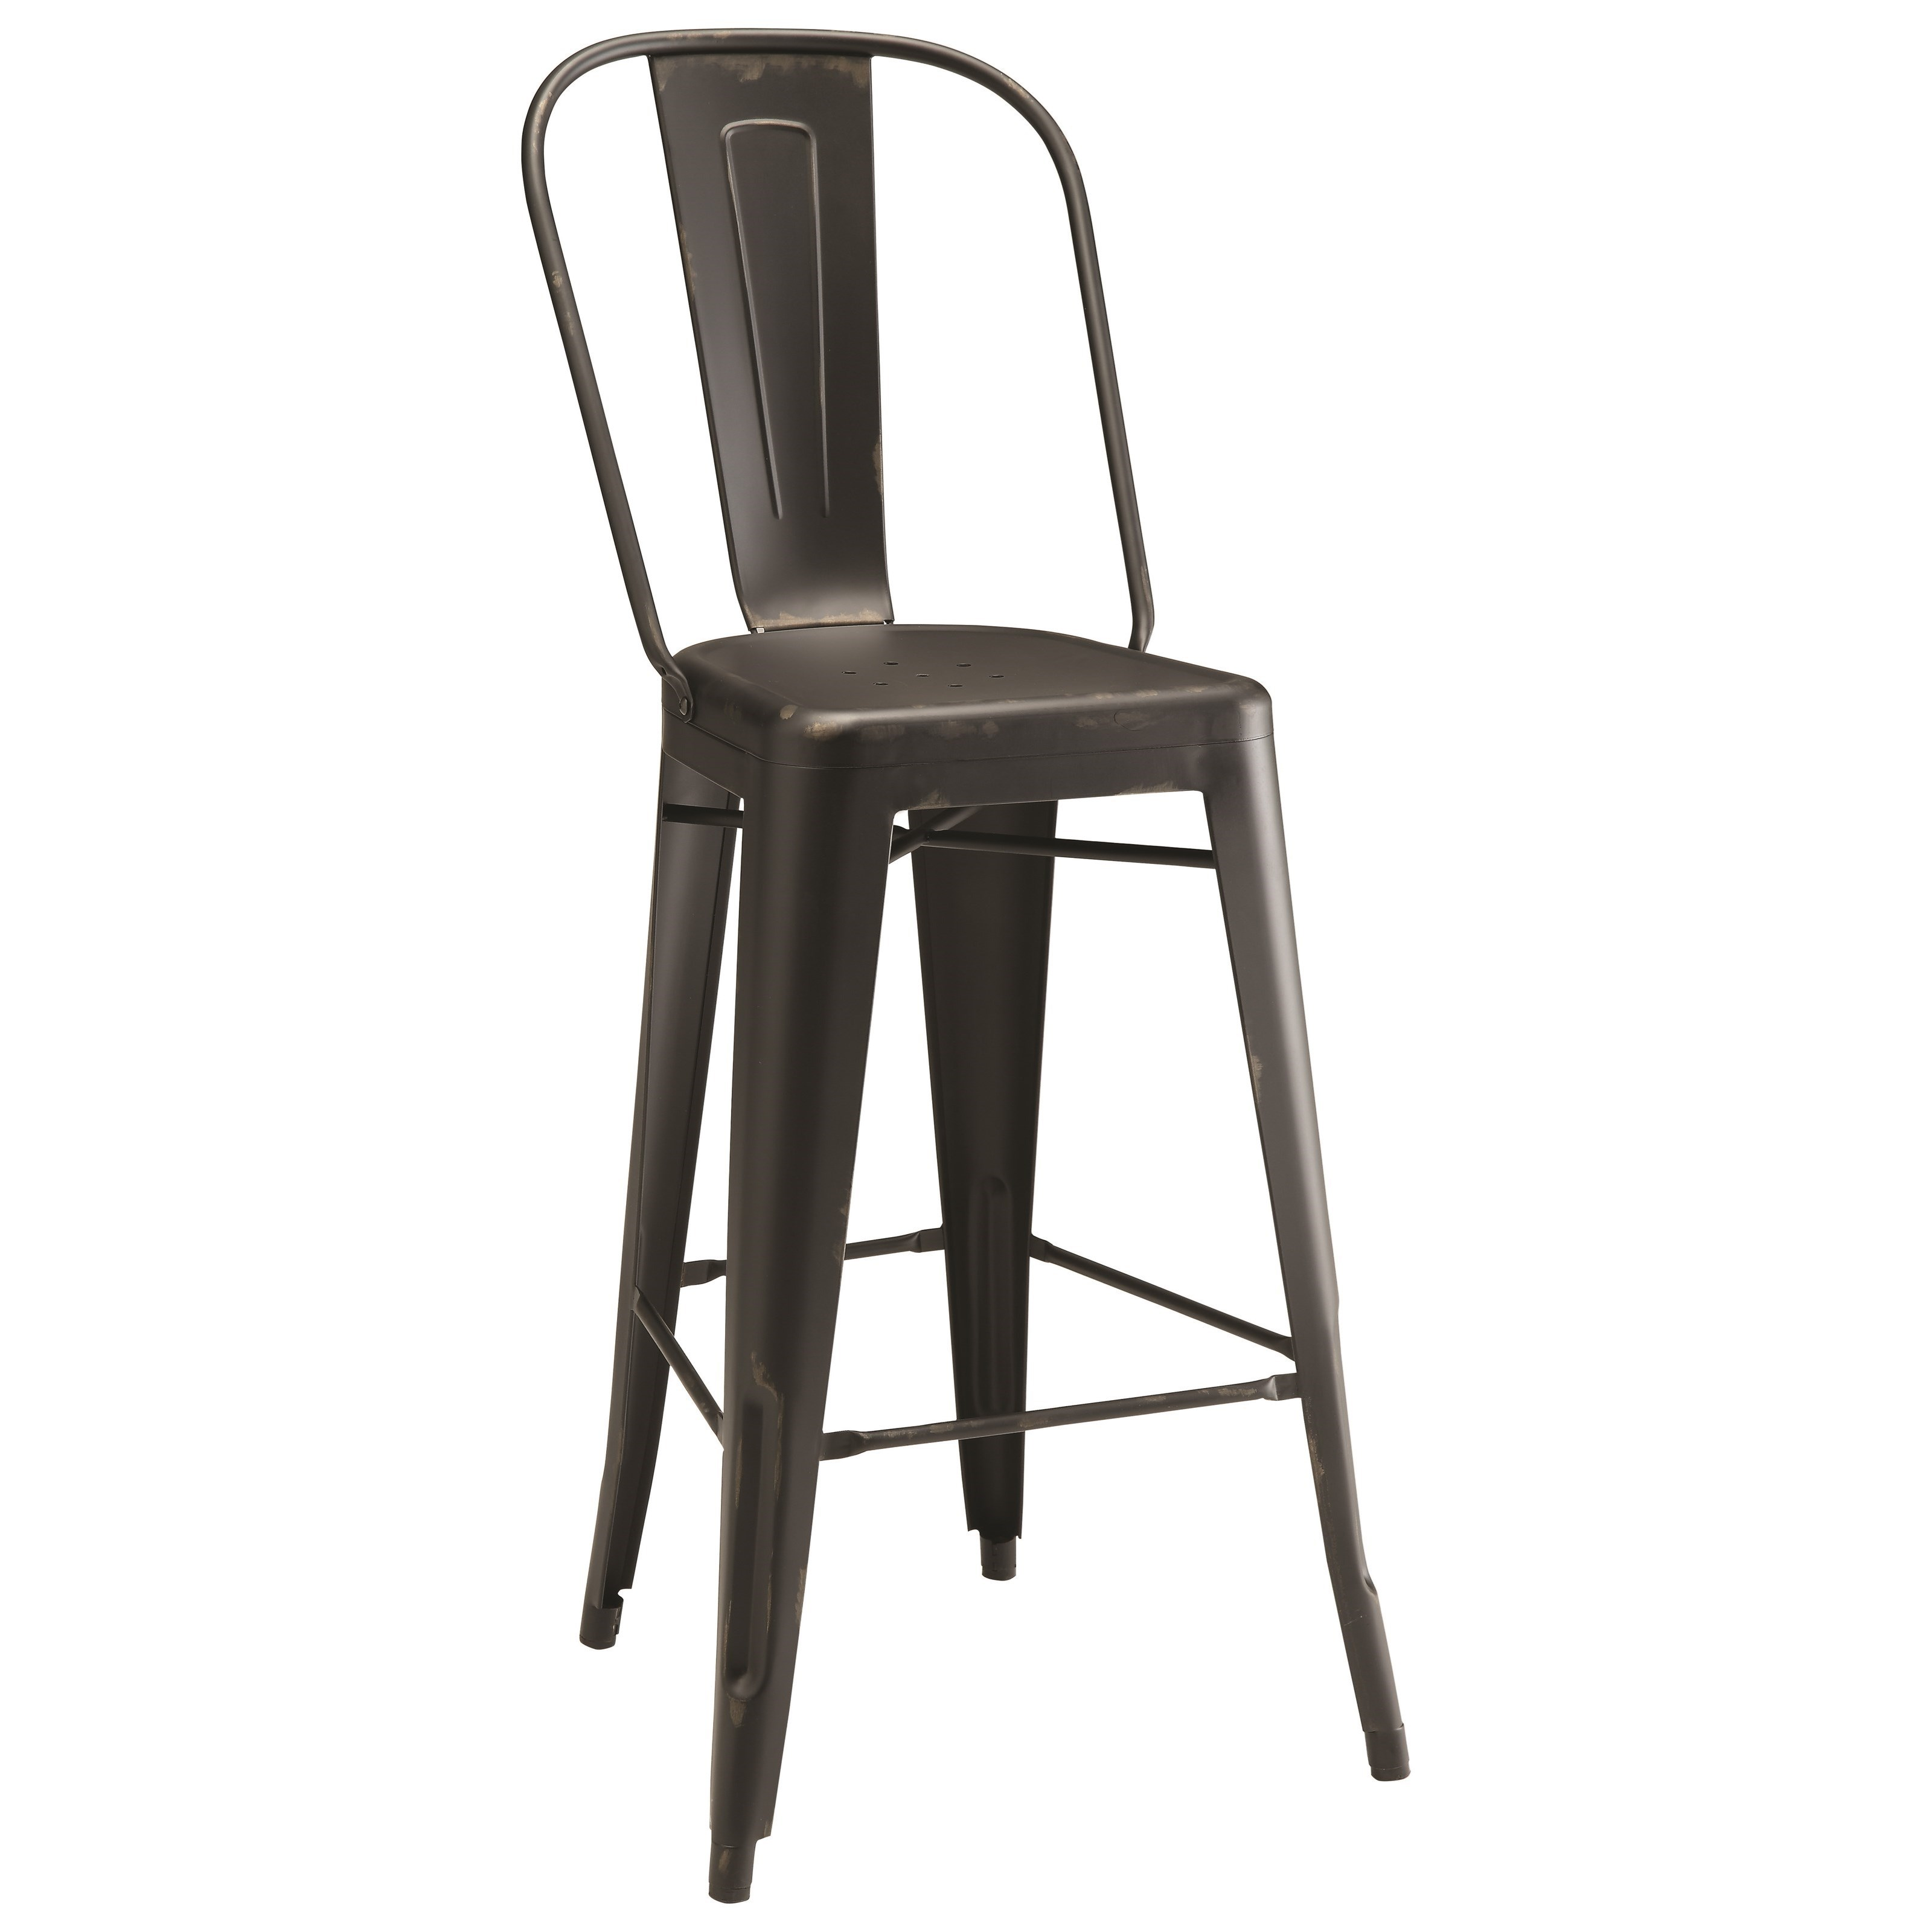 Coaster Dining Chairs and Bar Stools Bar Stool - Item Number: 106012